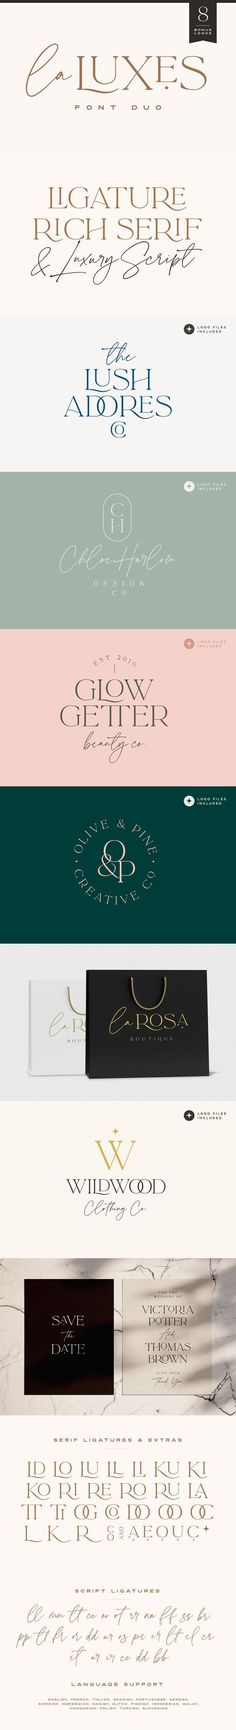 Indulge yourself in a luxurious typography pairing with La Luxes; a classic font duo consisting of an elegant Script & ligature-rich Serif. Also included in this product are 8 bonus logo templates… Typography Fonts, Typography Design, Branding Design, Logo Design, Typeface Font, Classic Fonts, Font Shop, Affinity Designer, Brush Font